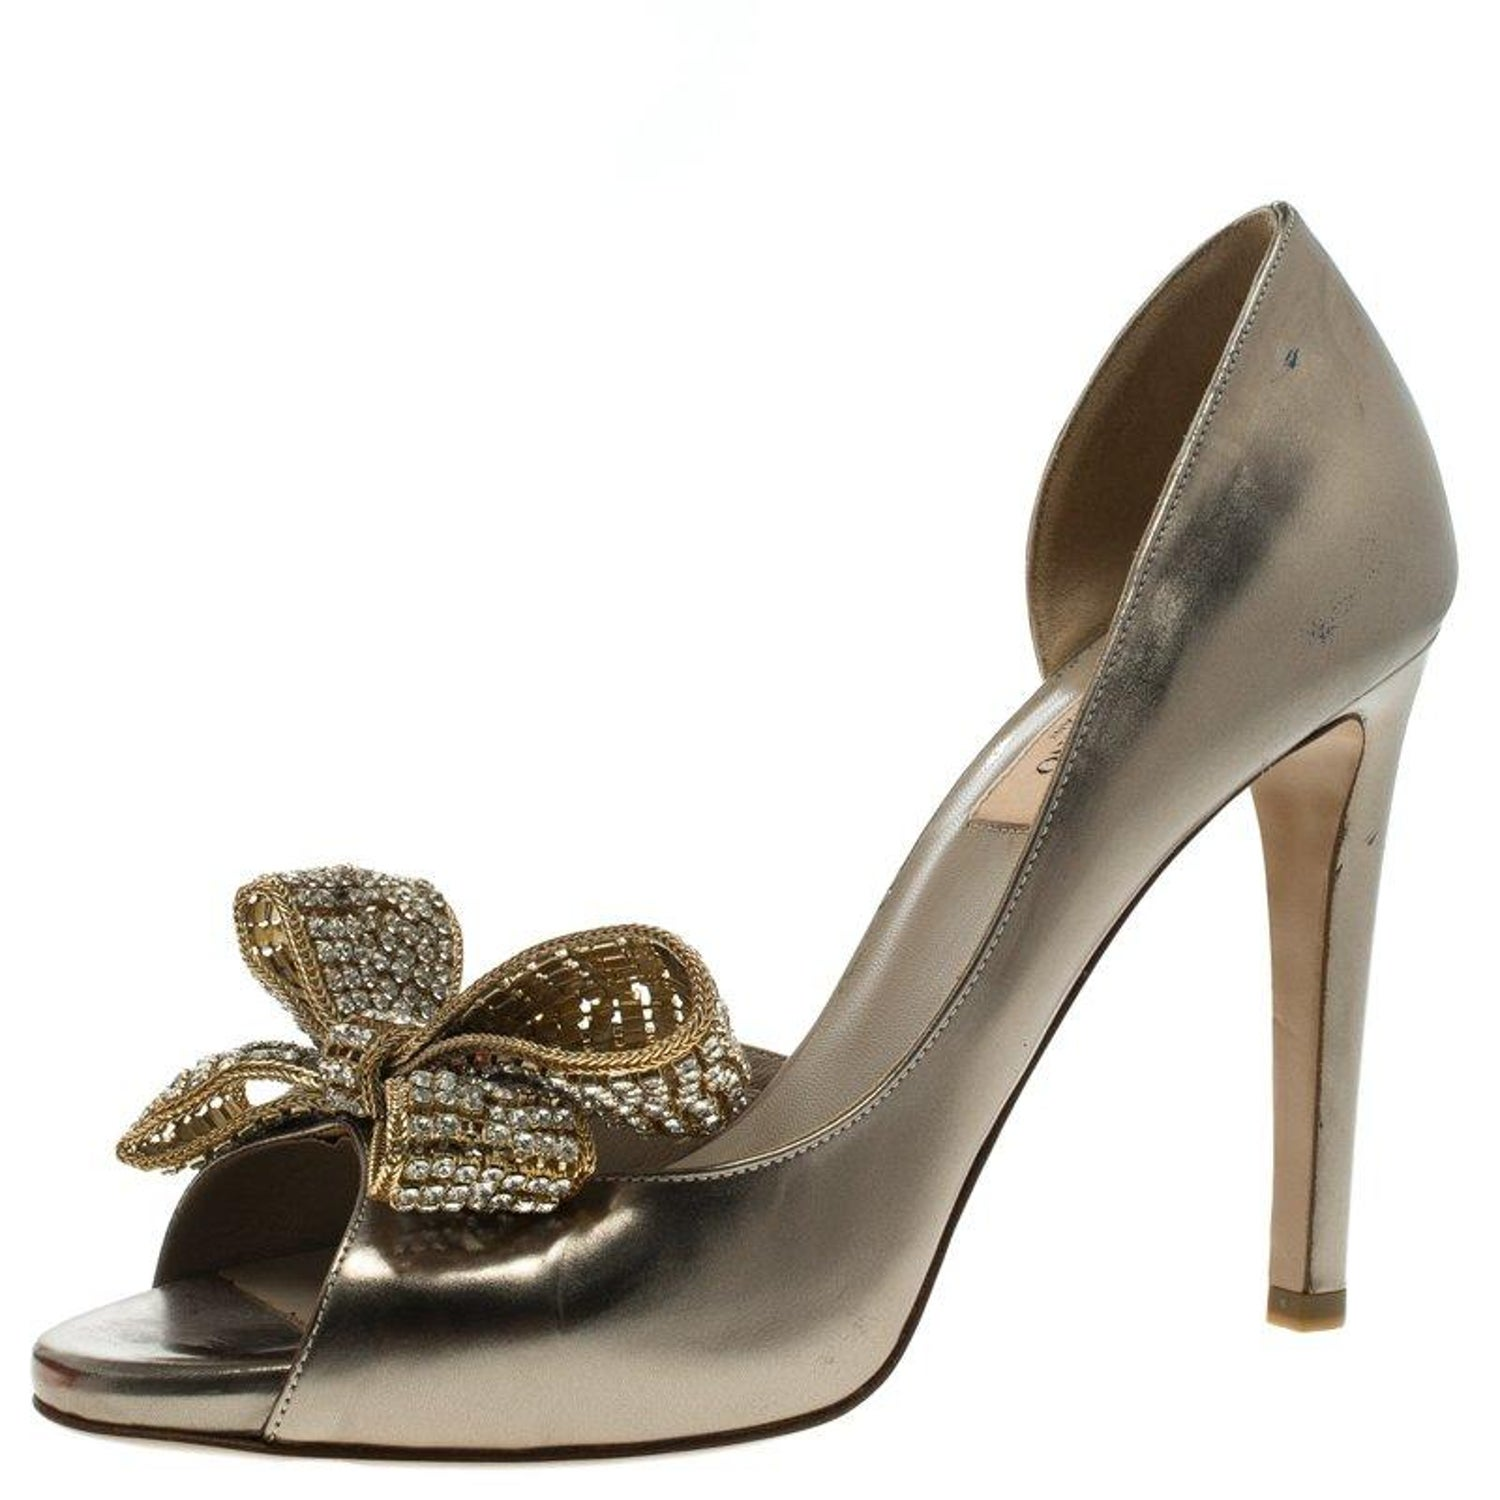 96936bf7bfc Valentino Bronze Metallic Leather Crystal Bow Detail D orsay Pumps Size 38  at 1stdibs